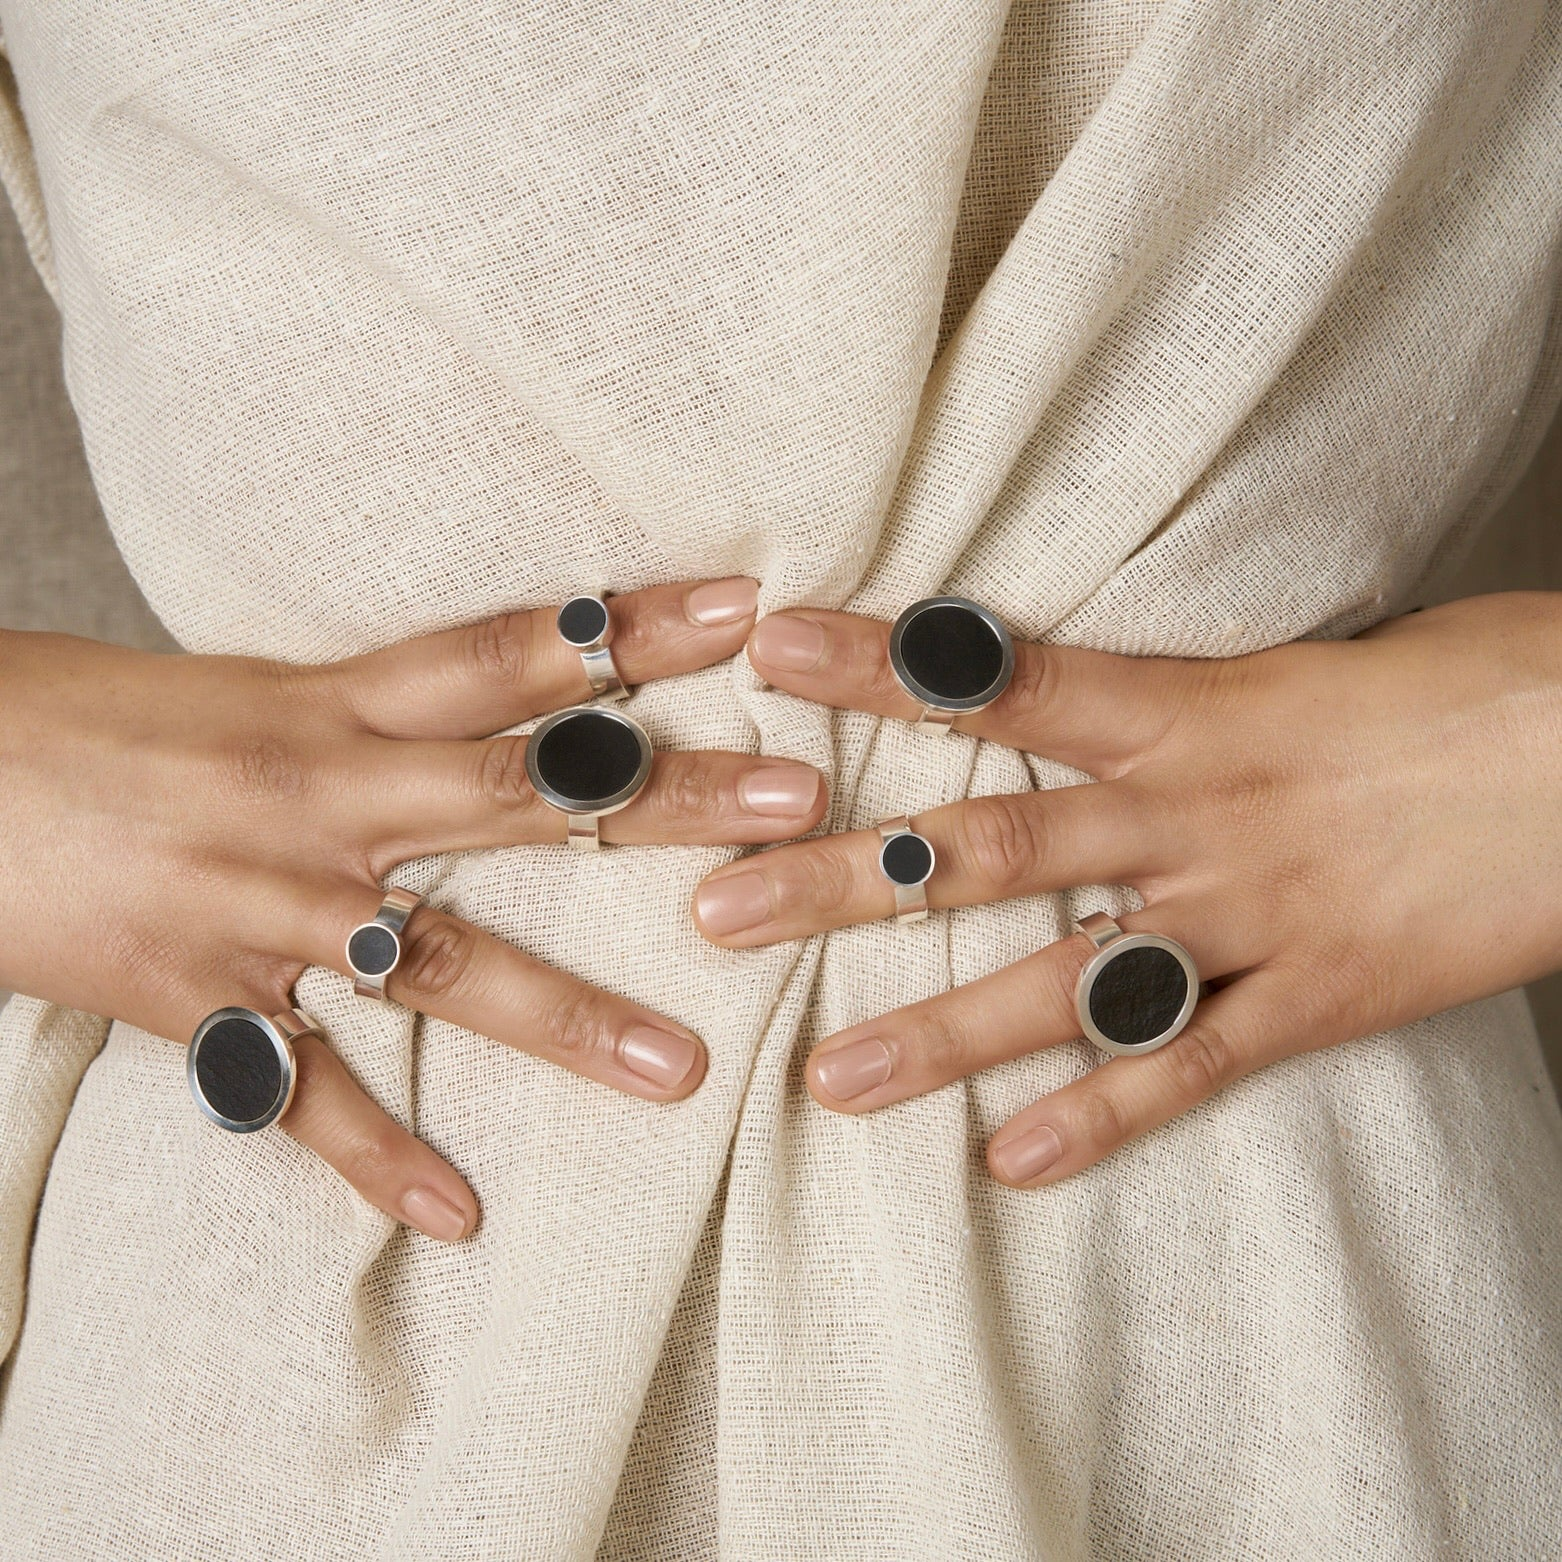 Turid Nolsoe Mohr | Black Basalt and Silver Chunky Rings | Stacked Rings Holding Waist Line Pose |  Faroe Islands